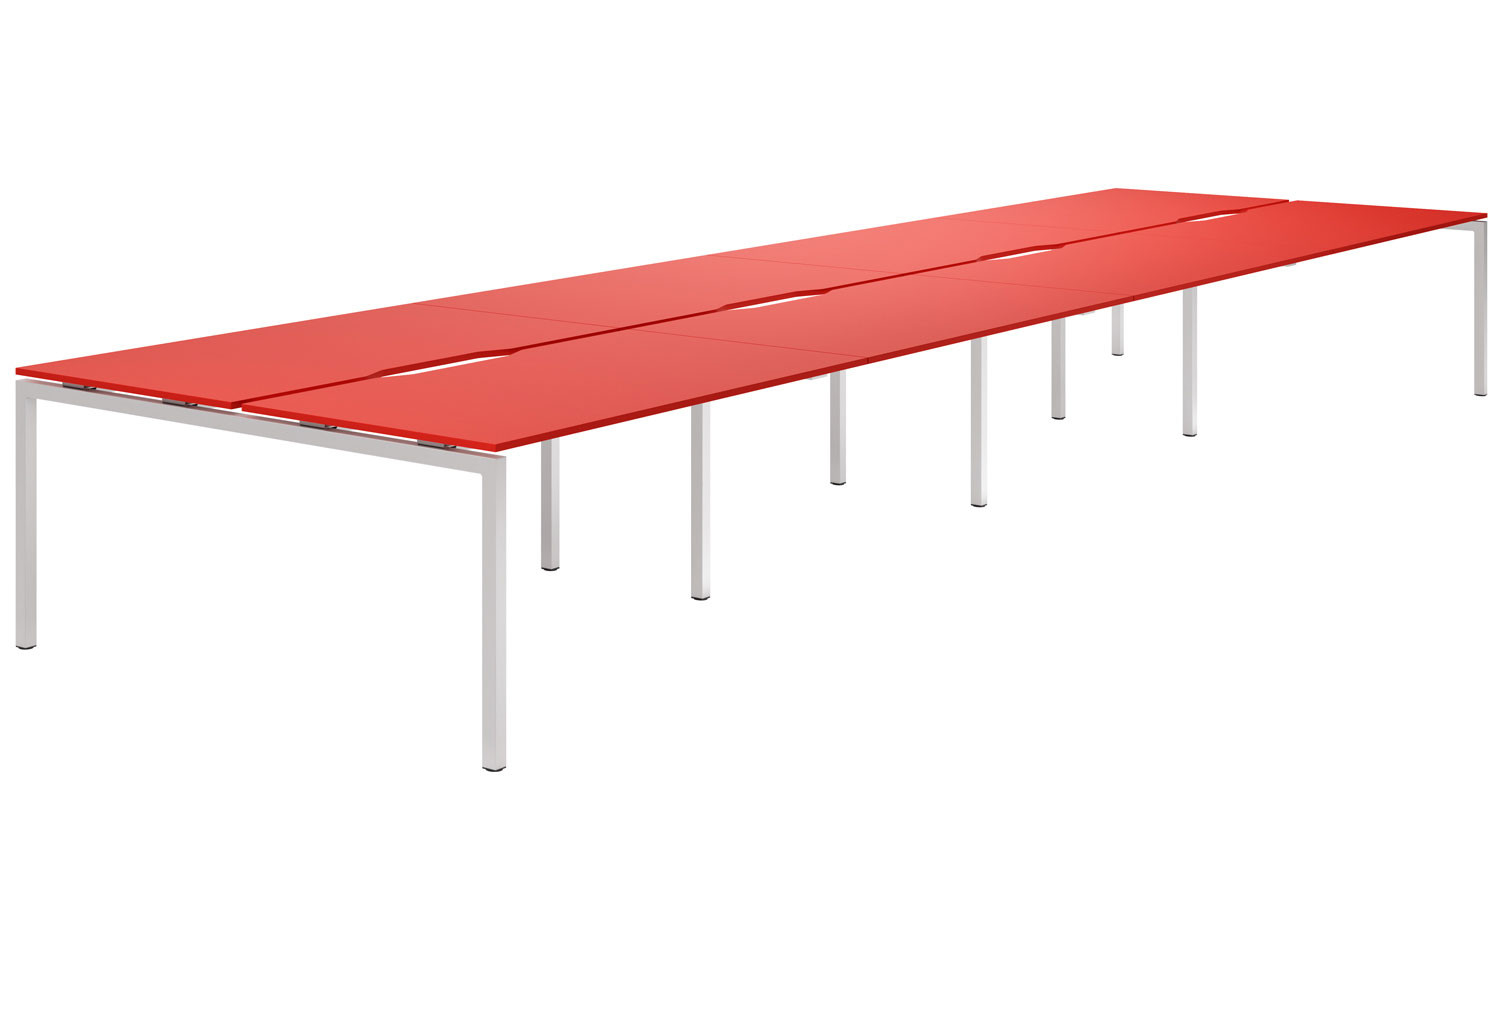 Campos H-Leg 8 Person Back To Back Bench Desk (Red)